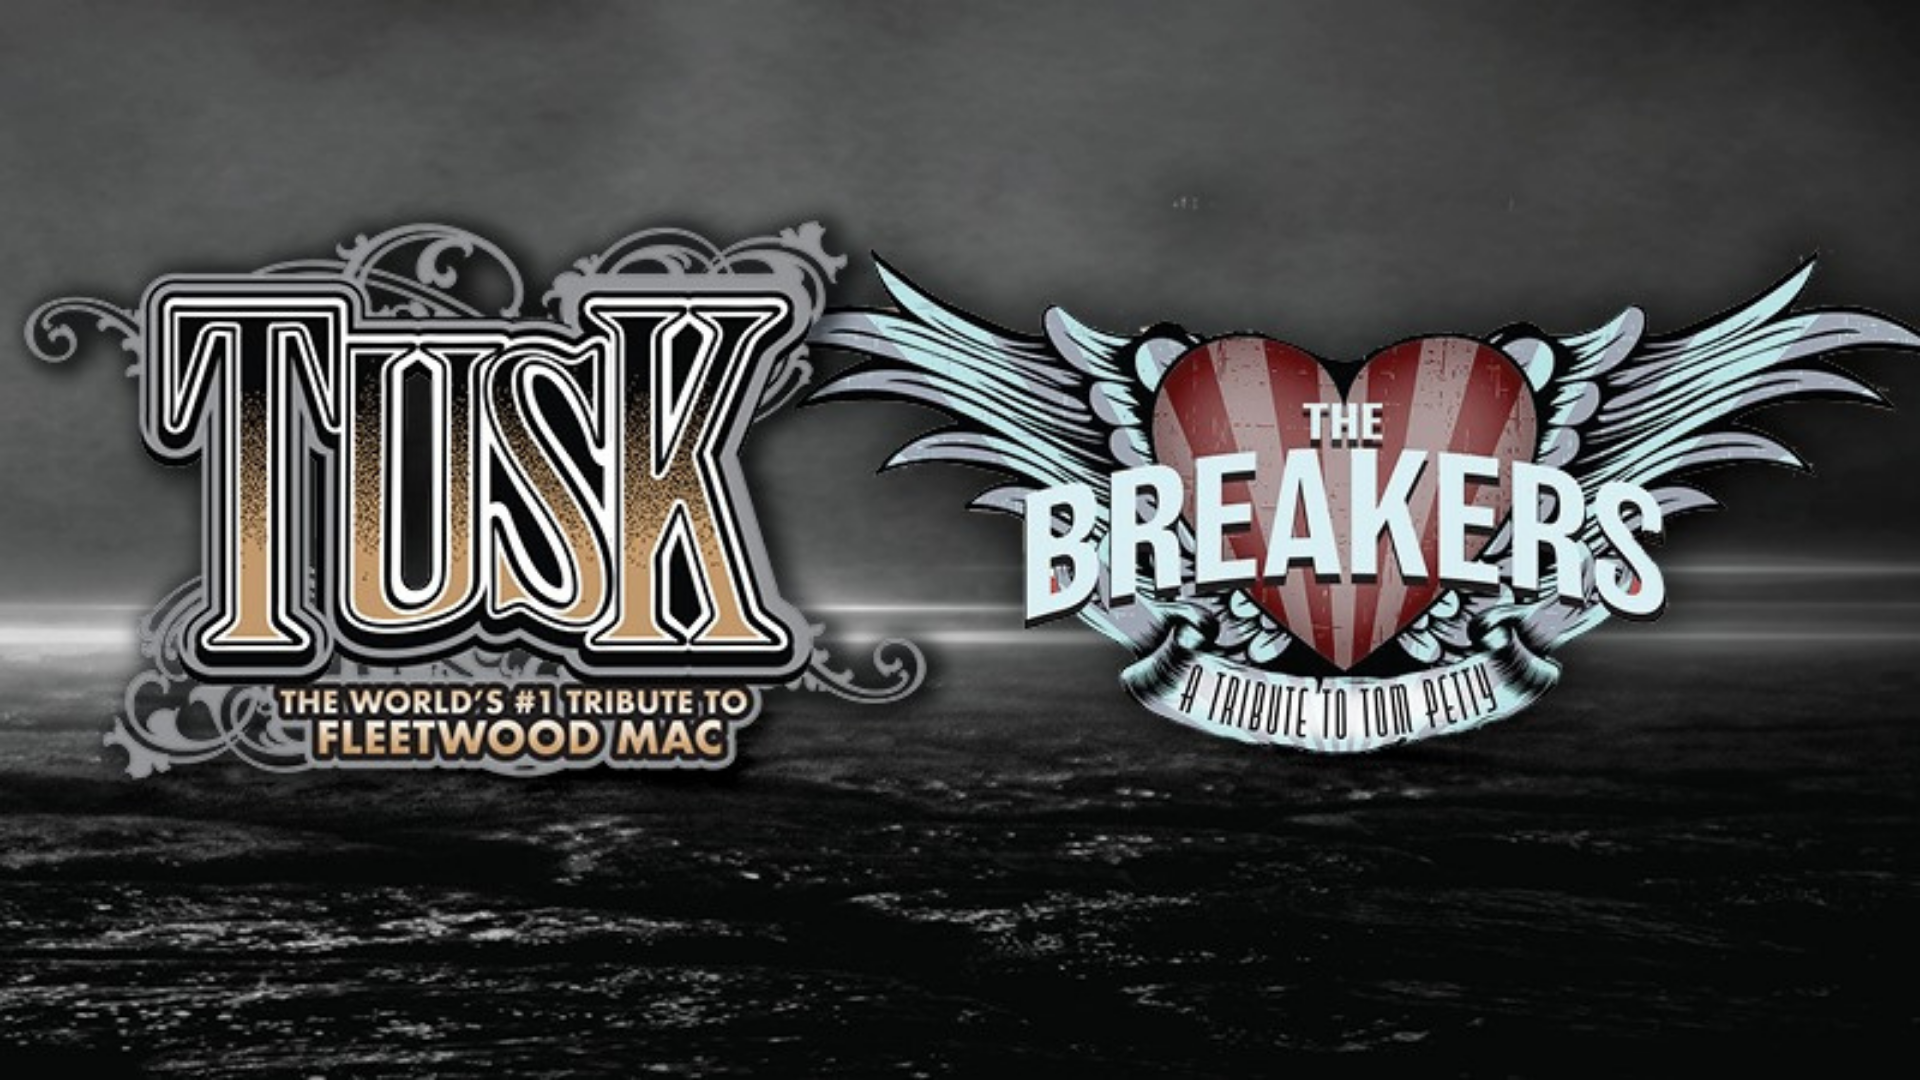 Tusk and The Breakers